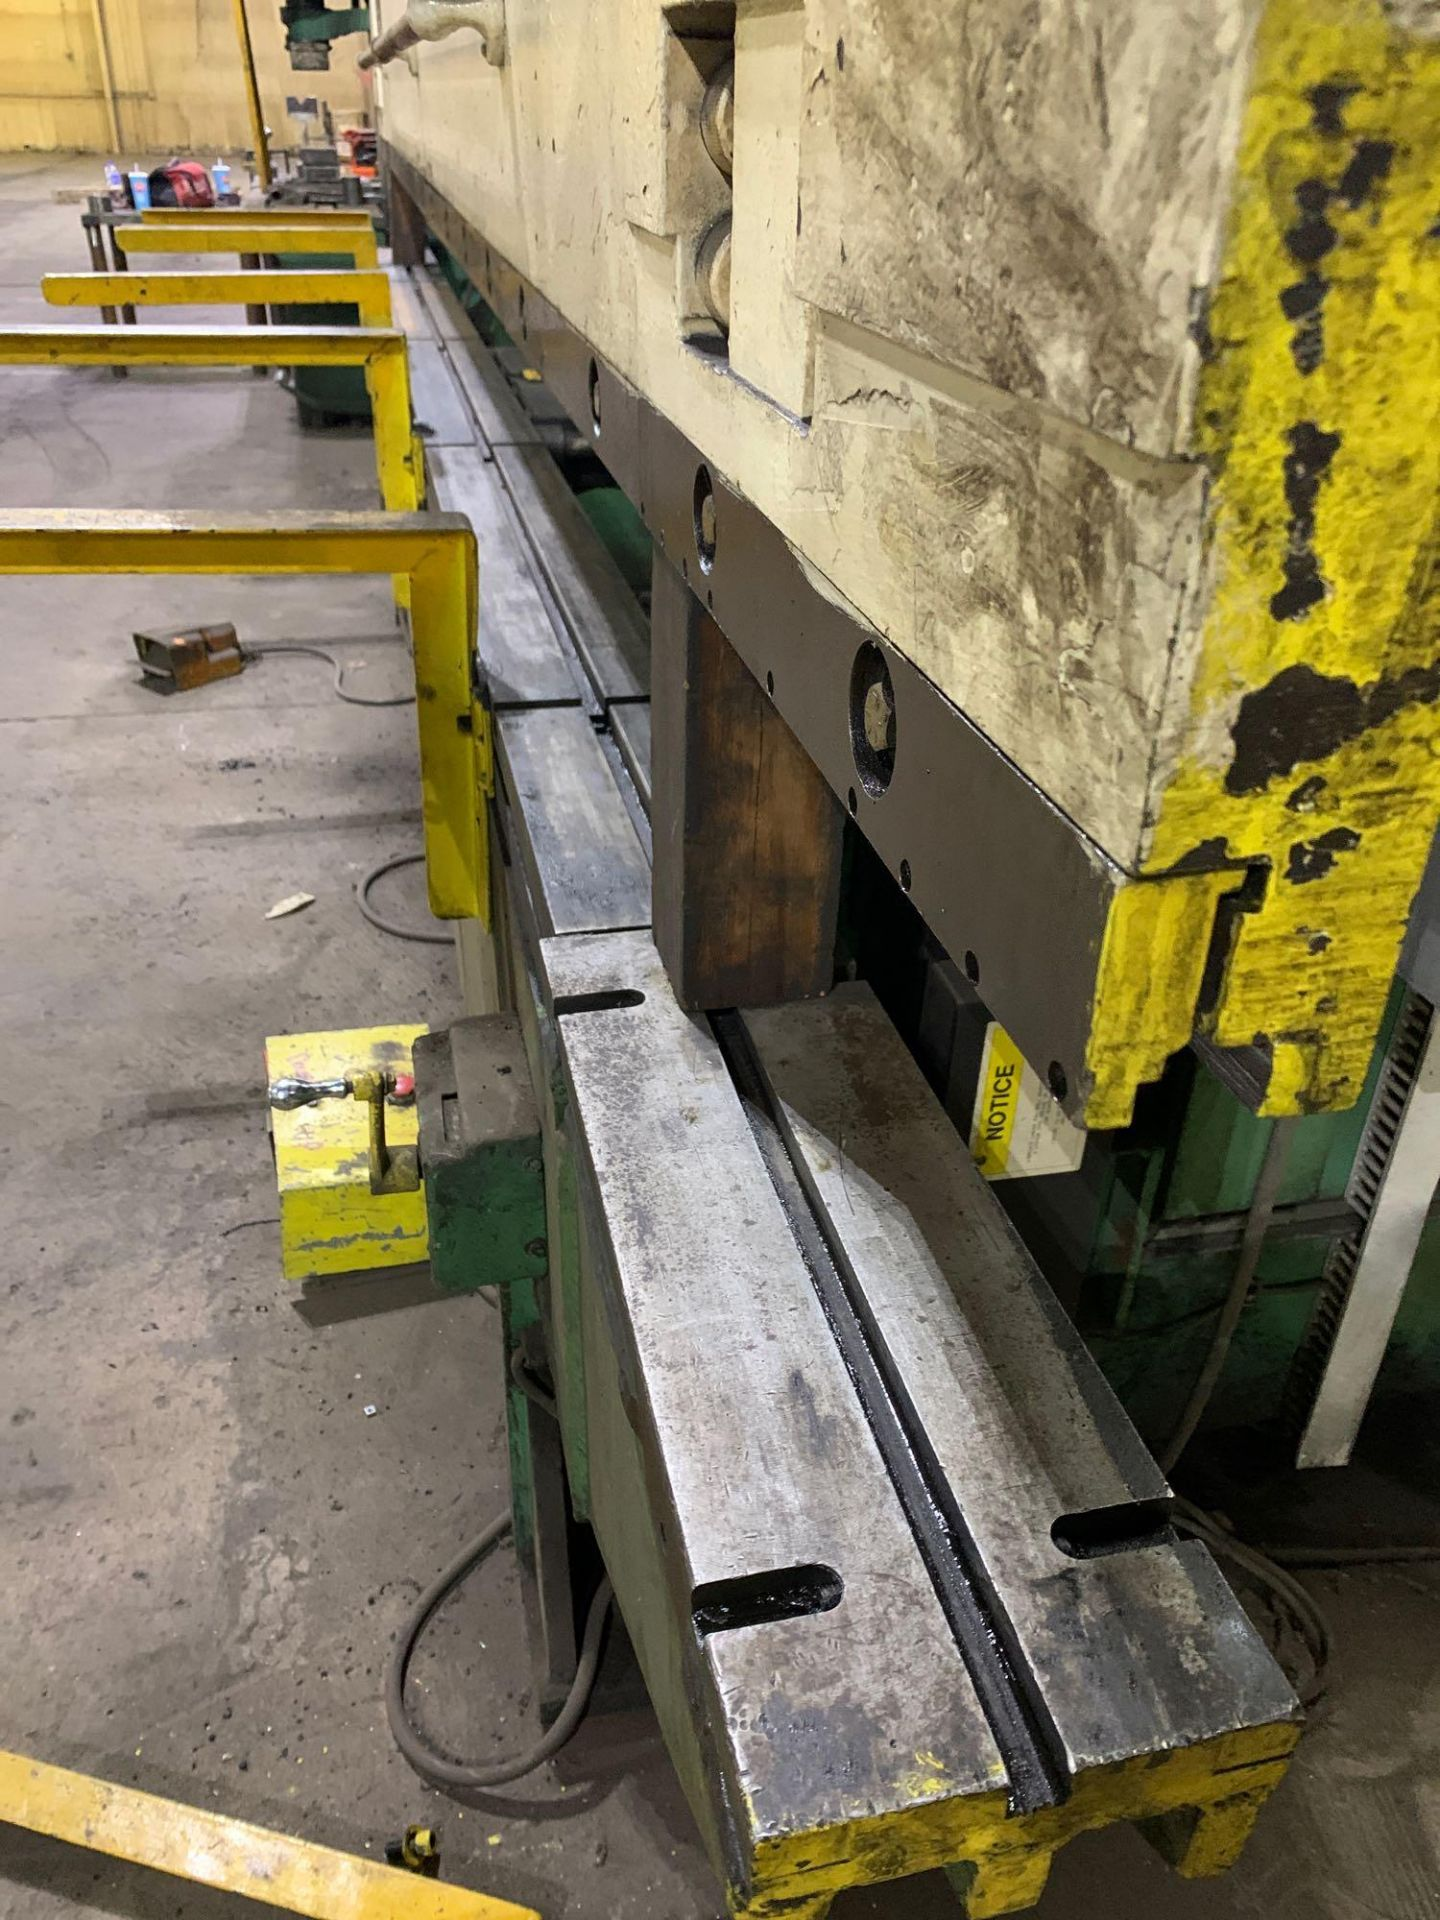 Chicago Dries & Krump Hydraulic Press Brake With: Hurco Autobend 7 Backgauge Control 200 Ton x 16' M - Image 15 of 41